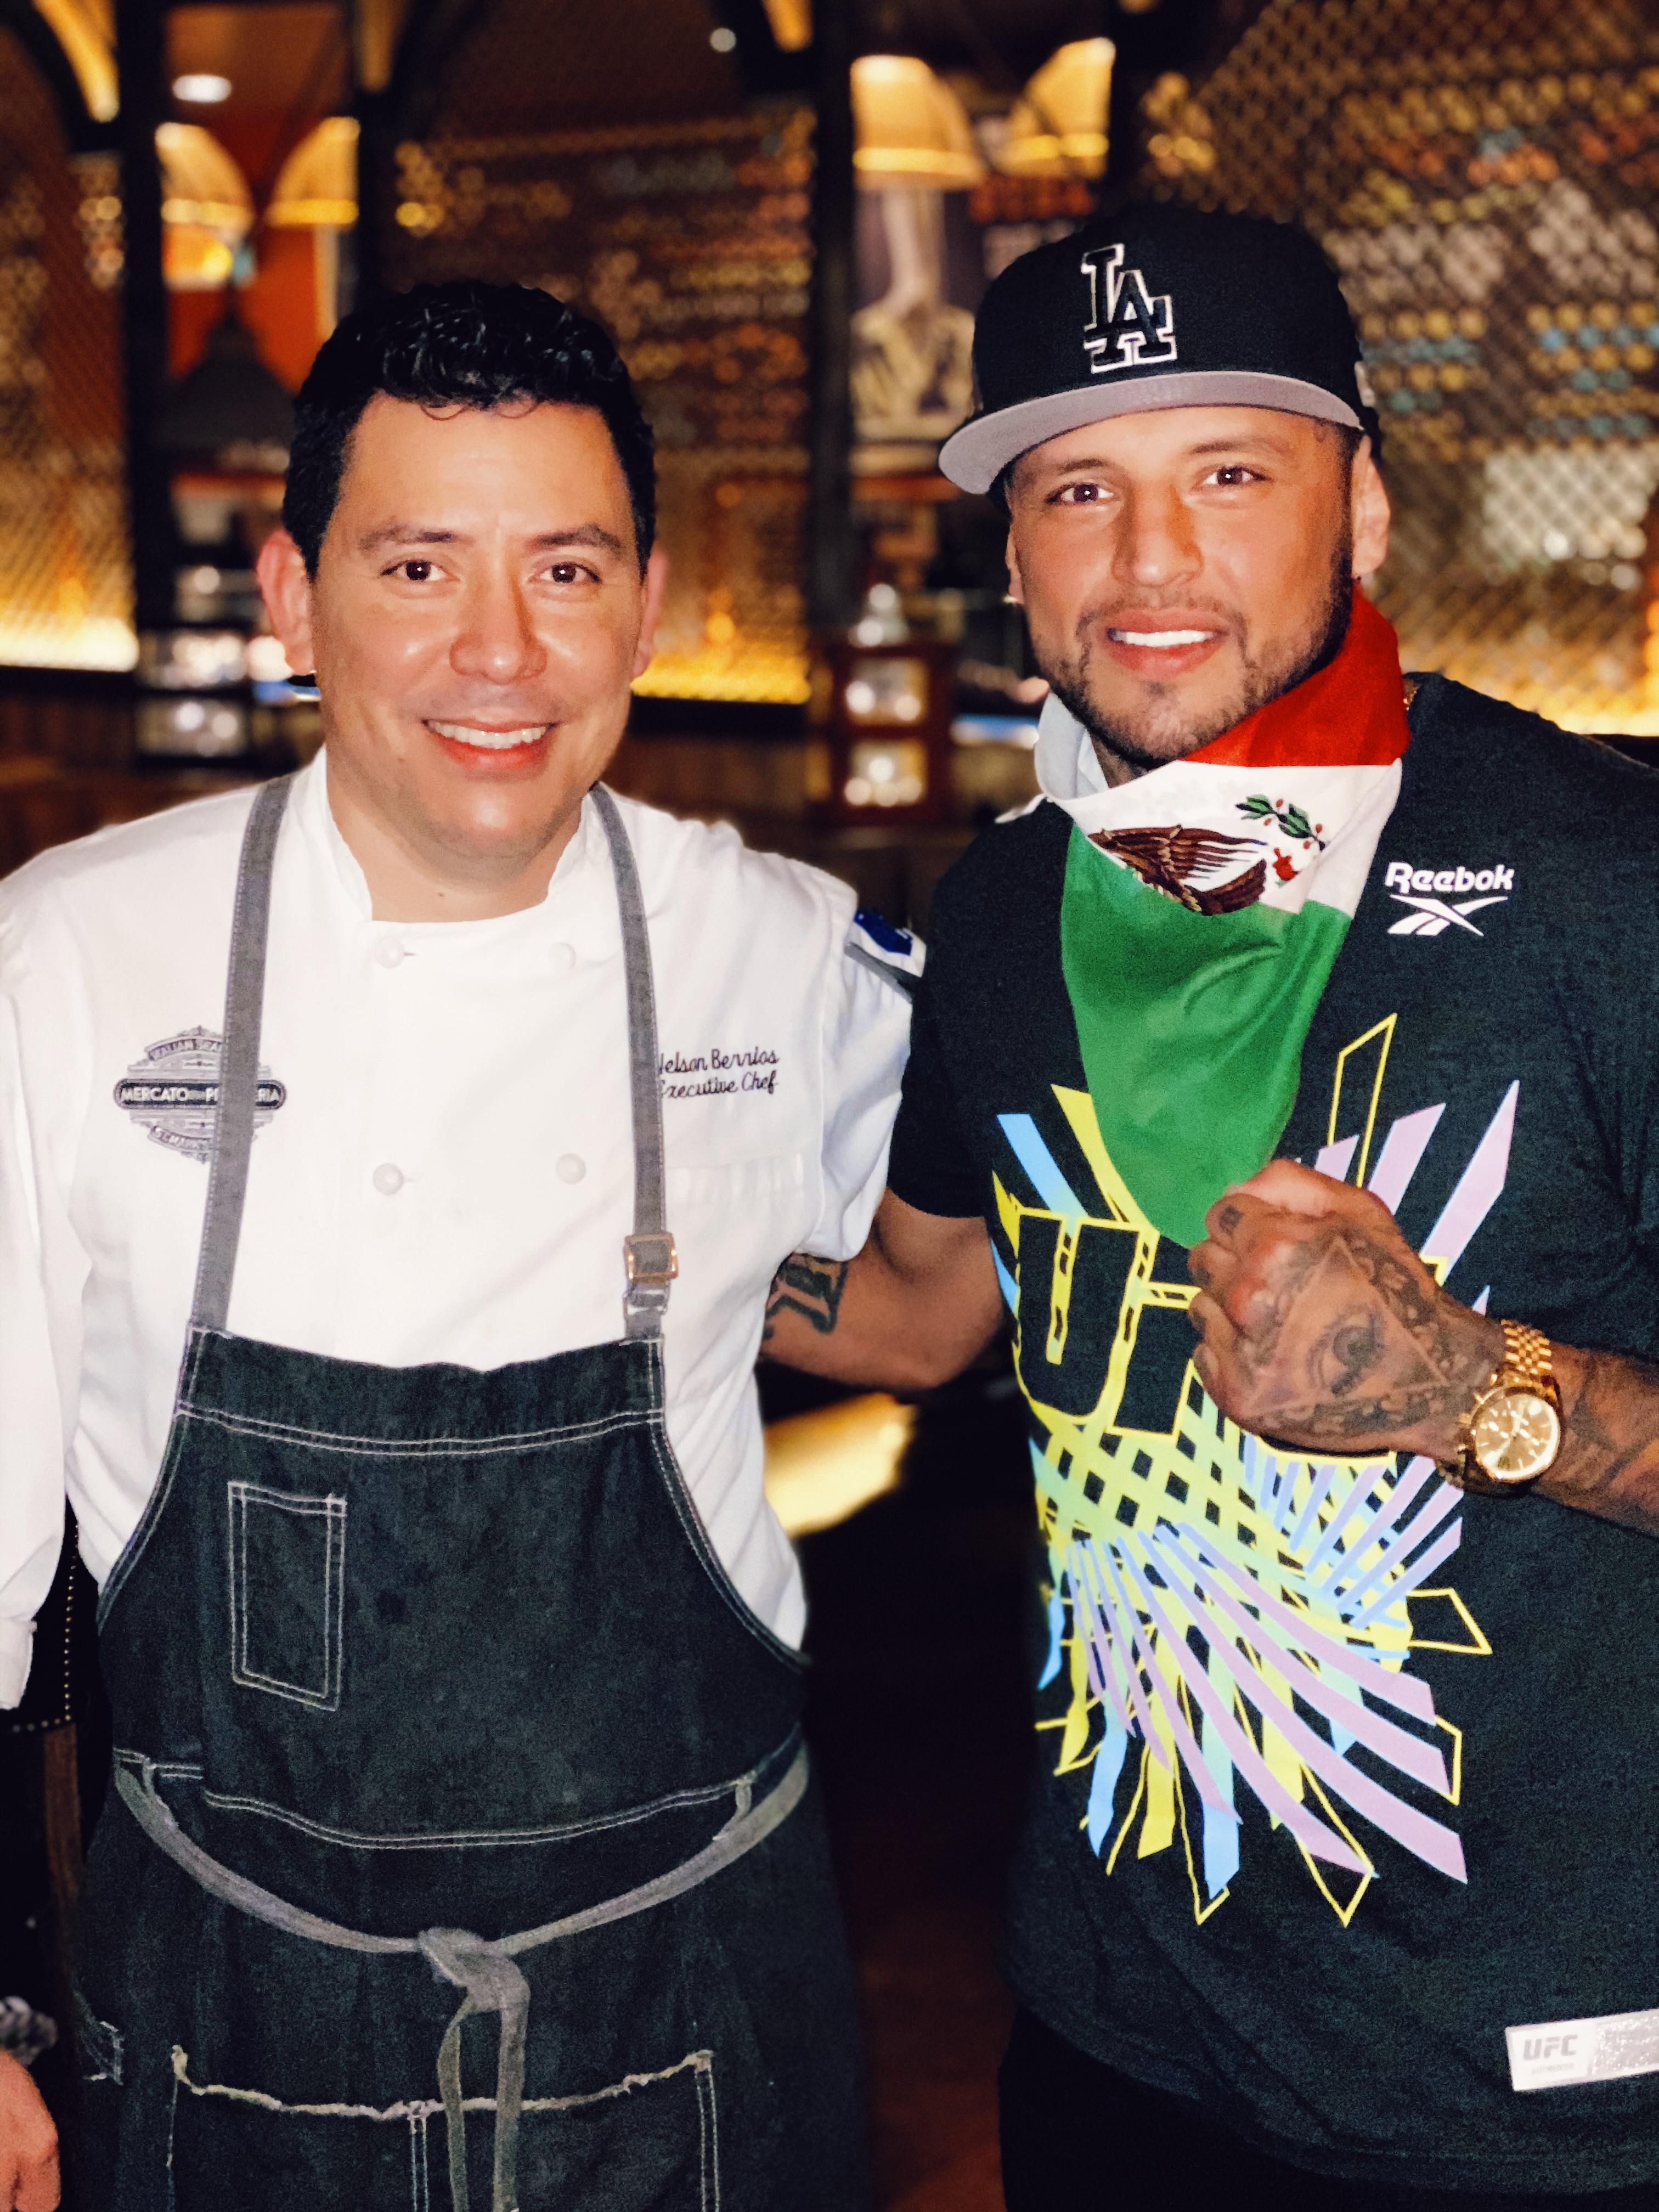 A chef in a white jacket stands next to a man with a Mexican flag scarf around his neck